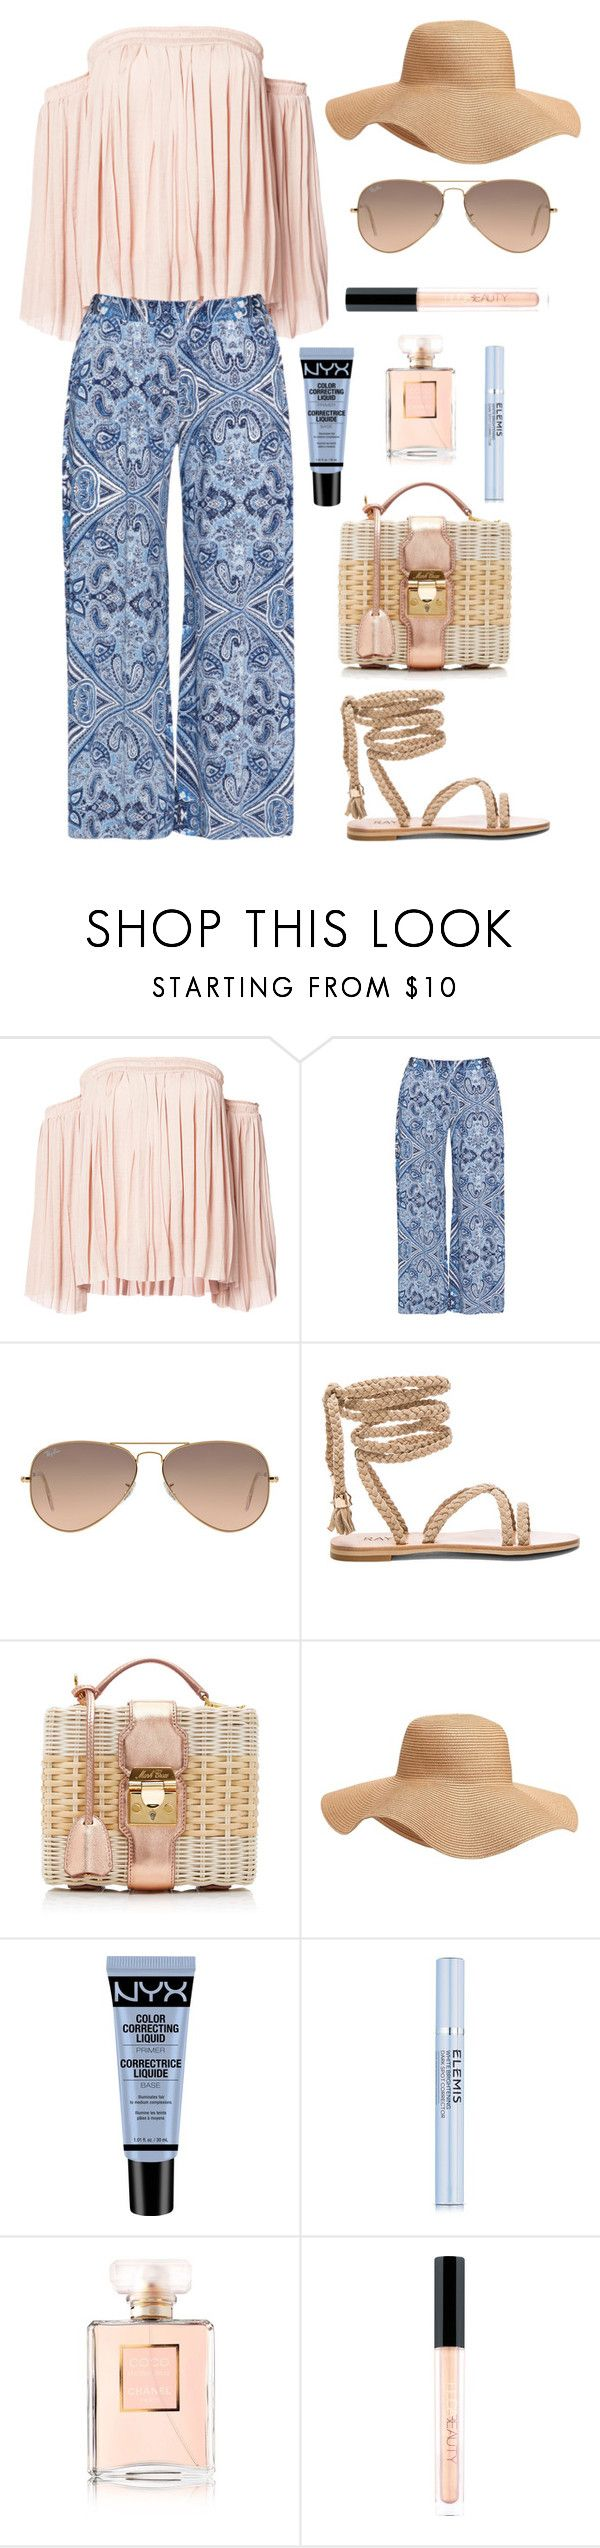 """""""Relaxed"""" by mariposa-fashion-21 ❤ liked on Polyvore featuring Elizabeth and James, Mat, Ray-Ban, Mark Cross, Old Navy, NYX, Elemis, Chanel and Huda Beauty"""